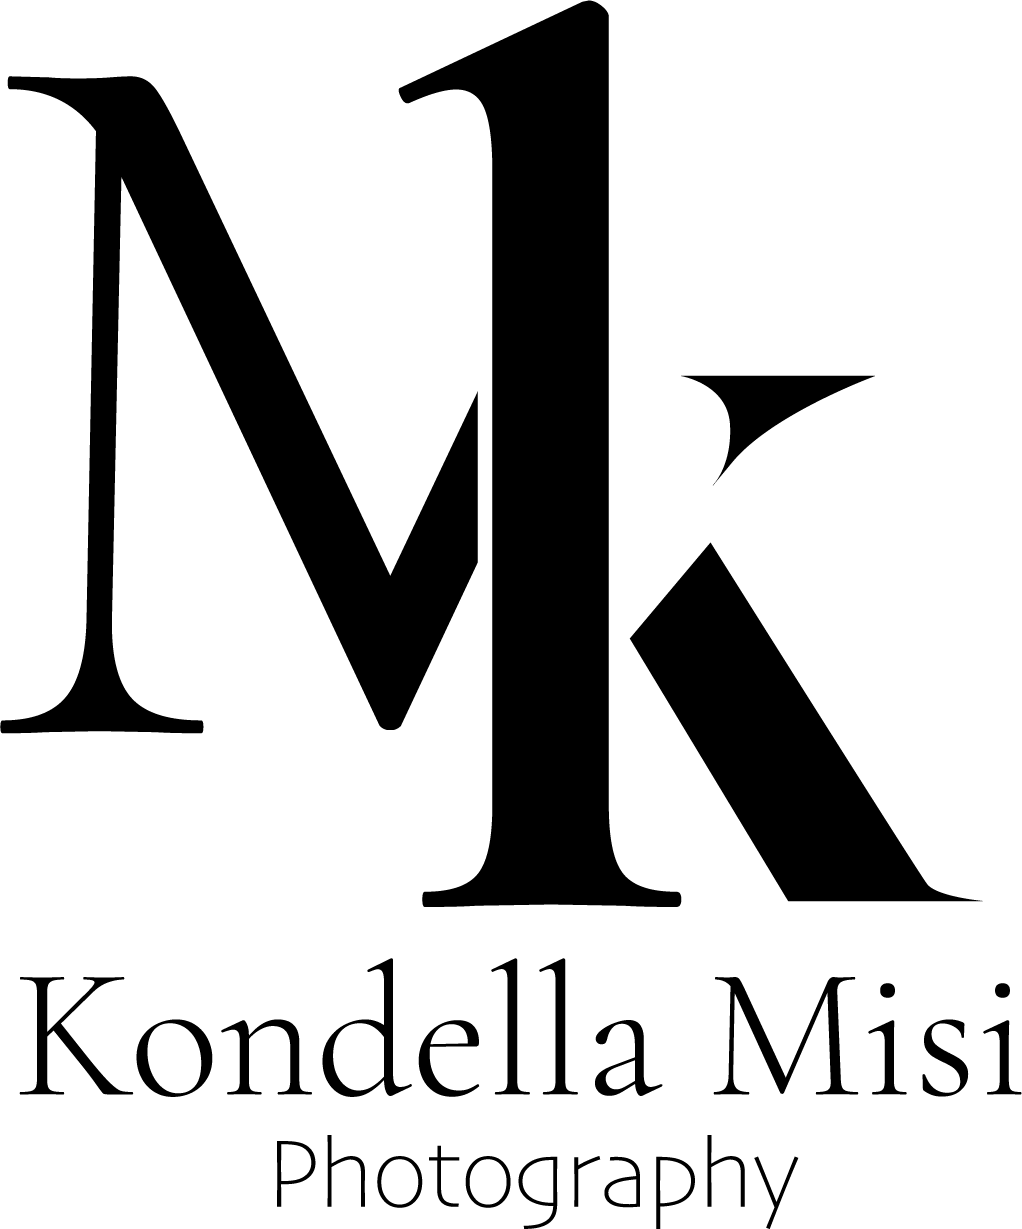 Kondella Misi Photography